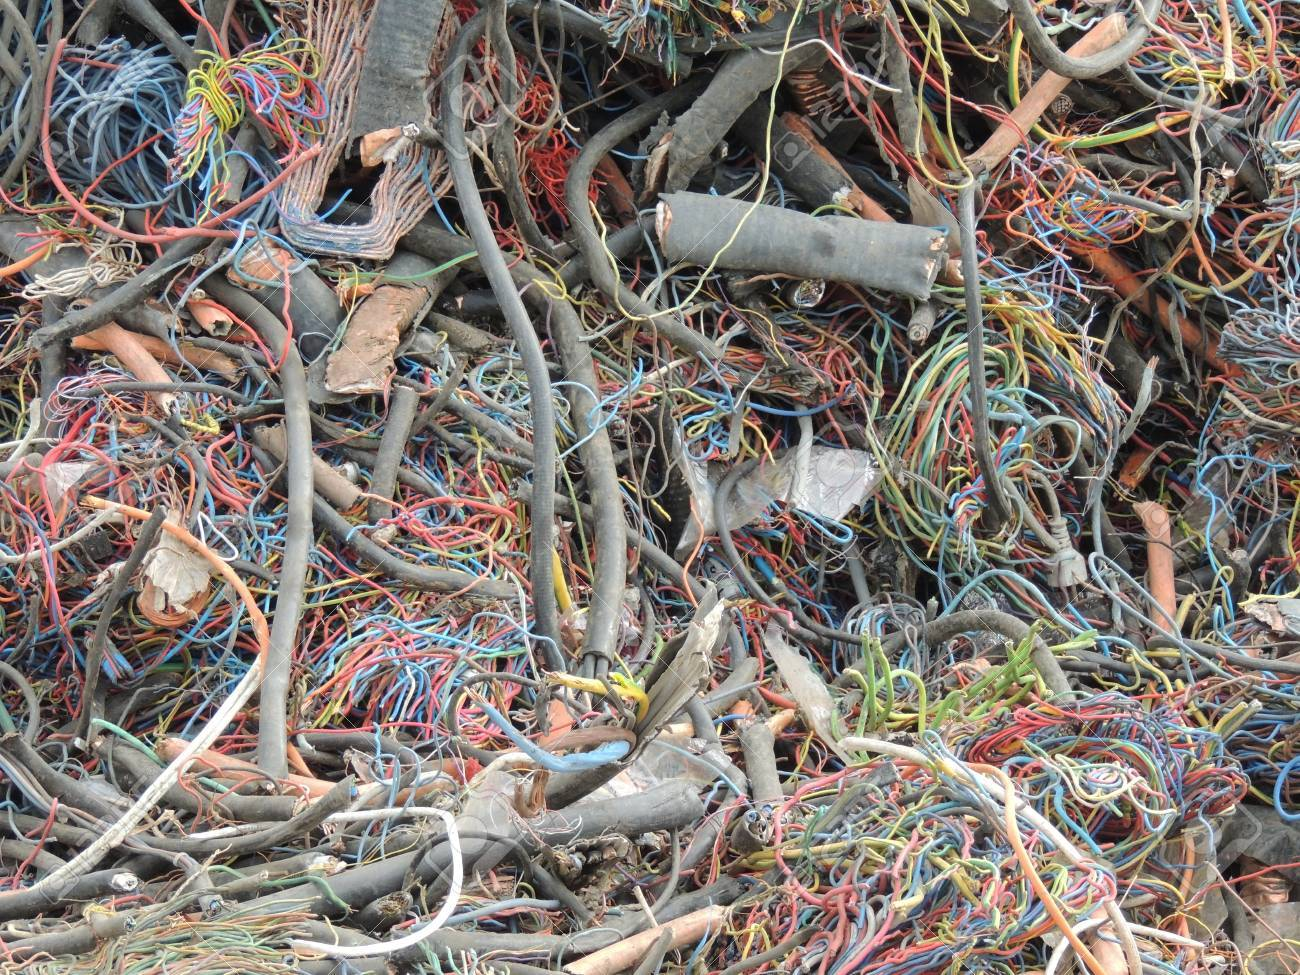 Electrical Wires For Copper Recycling Stock Photo, Picture And ...